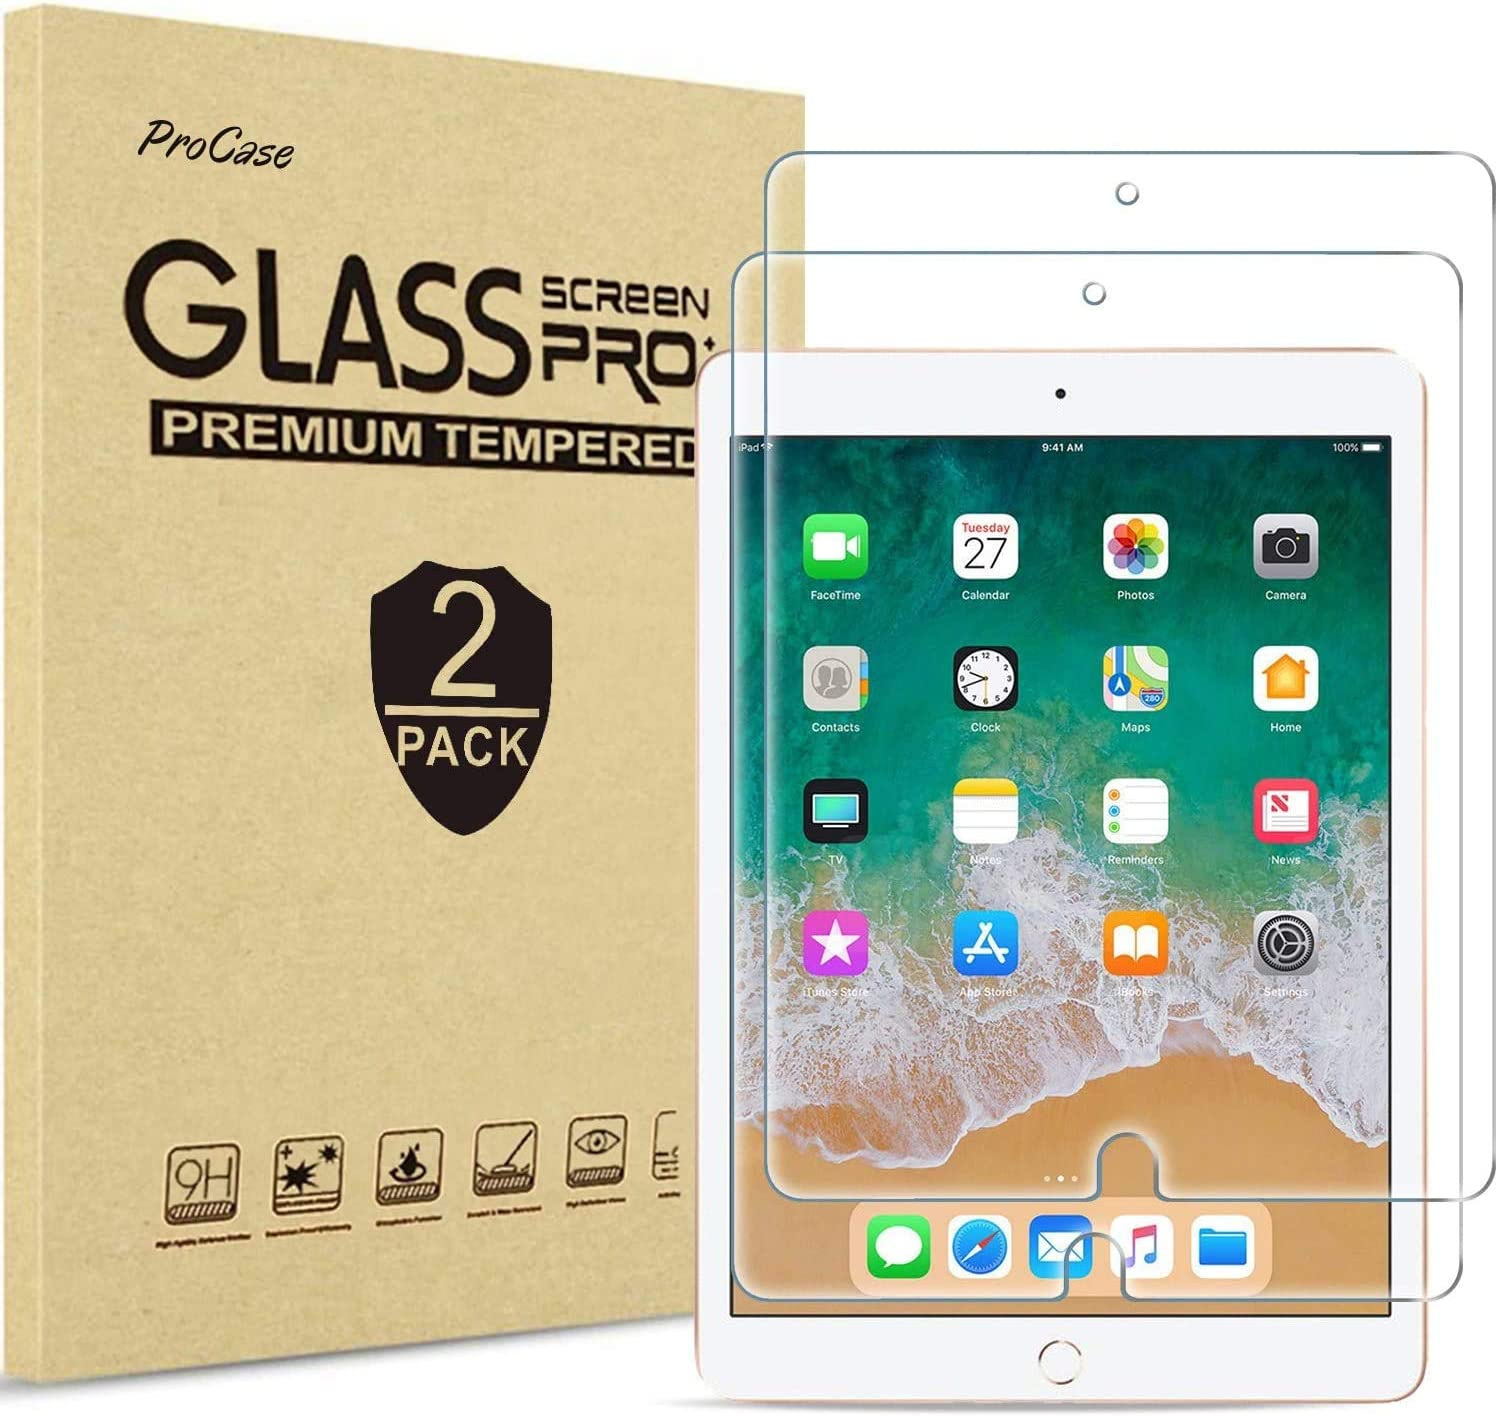 "[2 Pack] ProCase iPad 9.7"" (2018 & 2017) / iPad Pro 9.7 / iPad Air 2 / iPad Air Screen Protector, Anti Scratch Tempered Glass Screen Film Guard for iPad 9.7 6th / 5th Gen, Pro 9.7, iPad Air 1, Air 2"